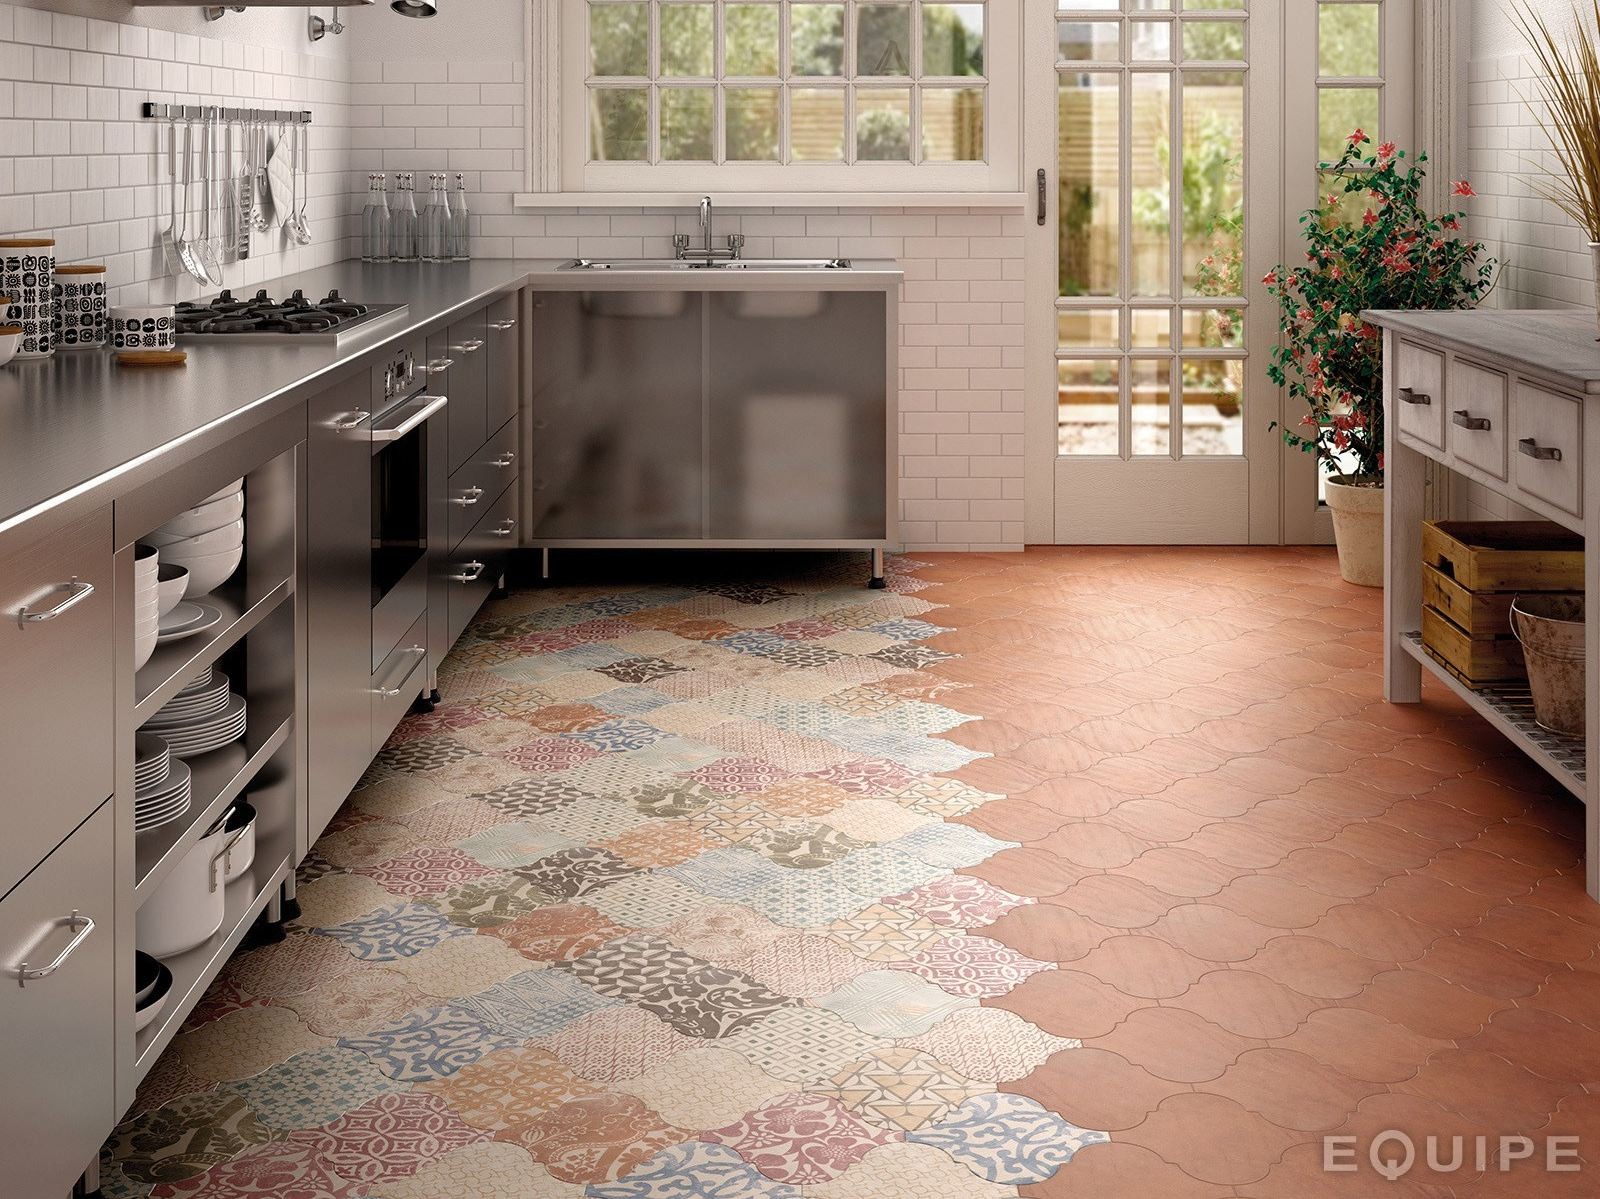 Sensible choice kitchen floor tiles for classy finish kitchen floor tile view in gallery arabesque tile kitchen floor patchwork equipe 4jpg dailygadgetfo Gallery